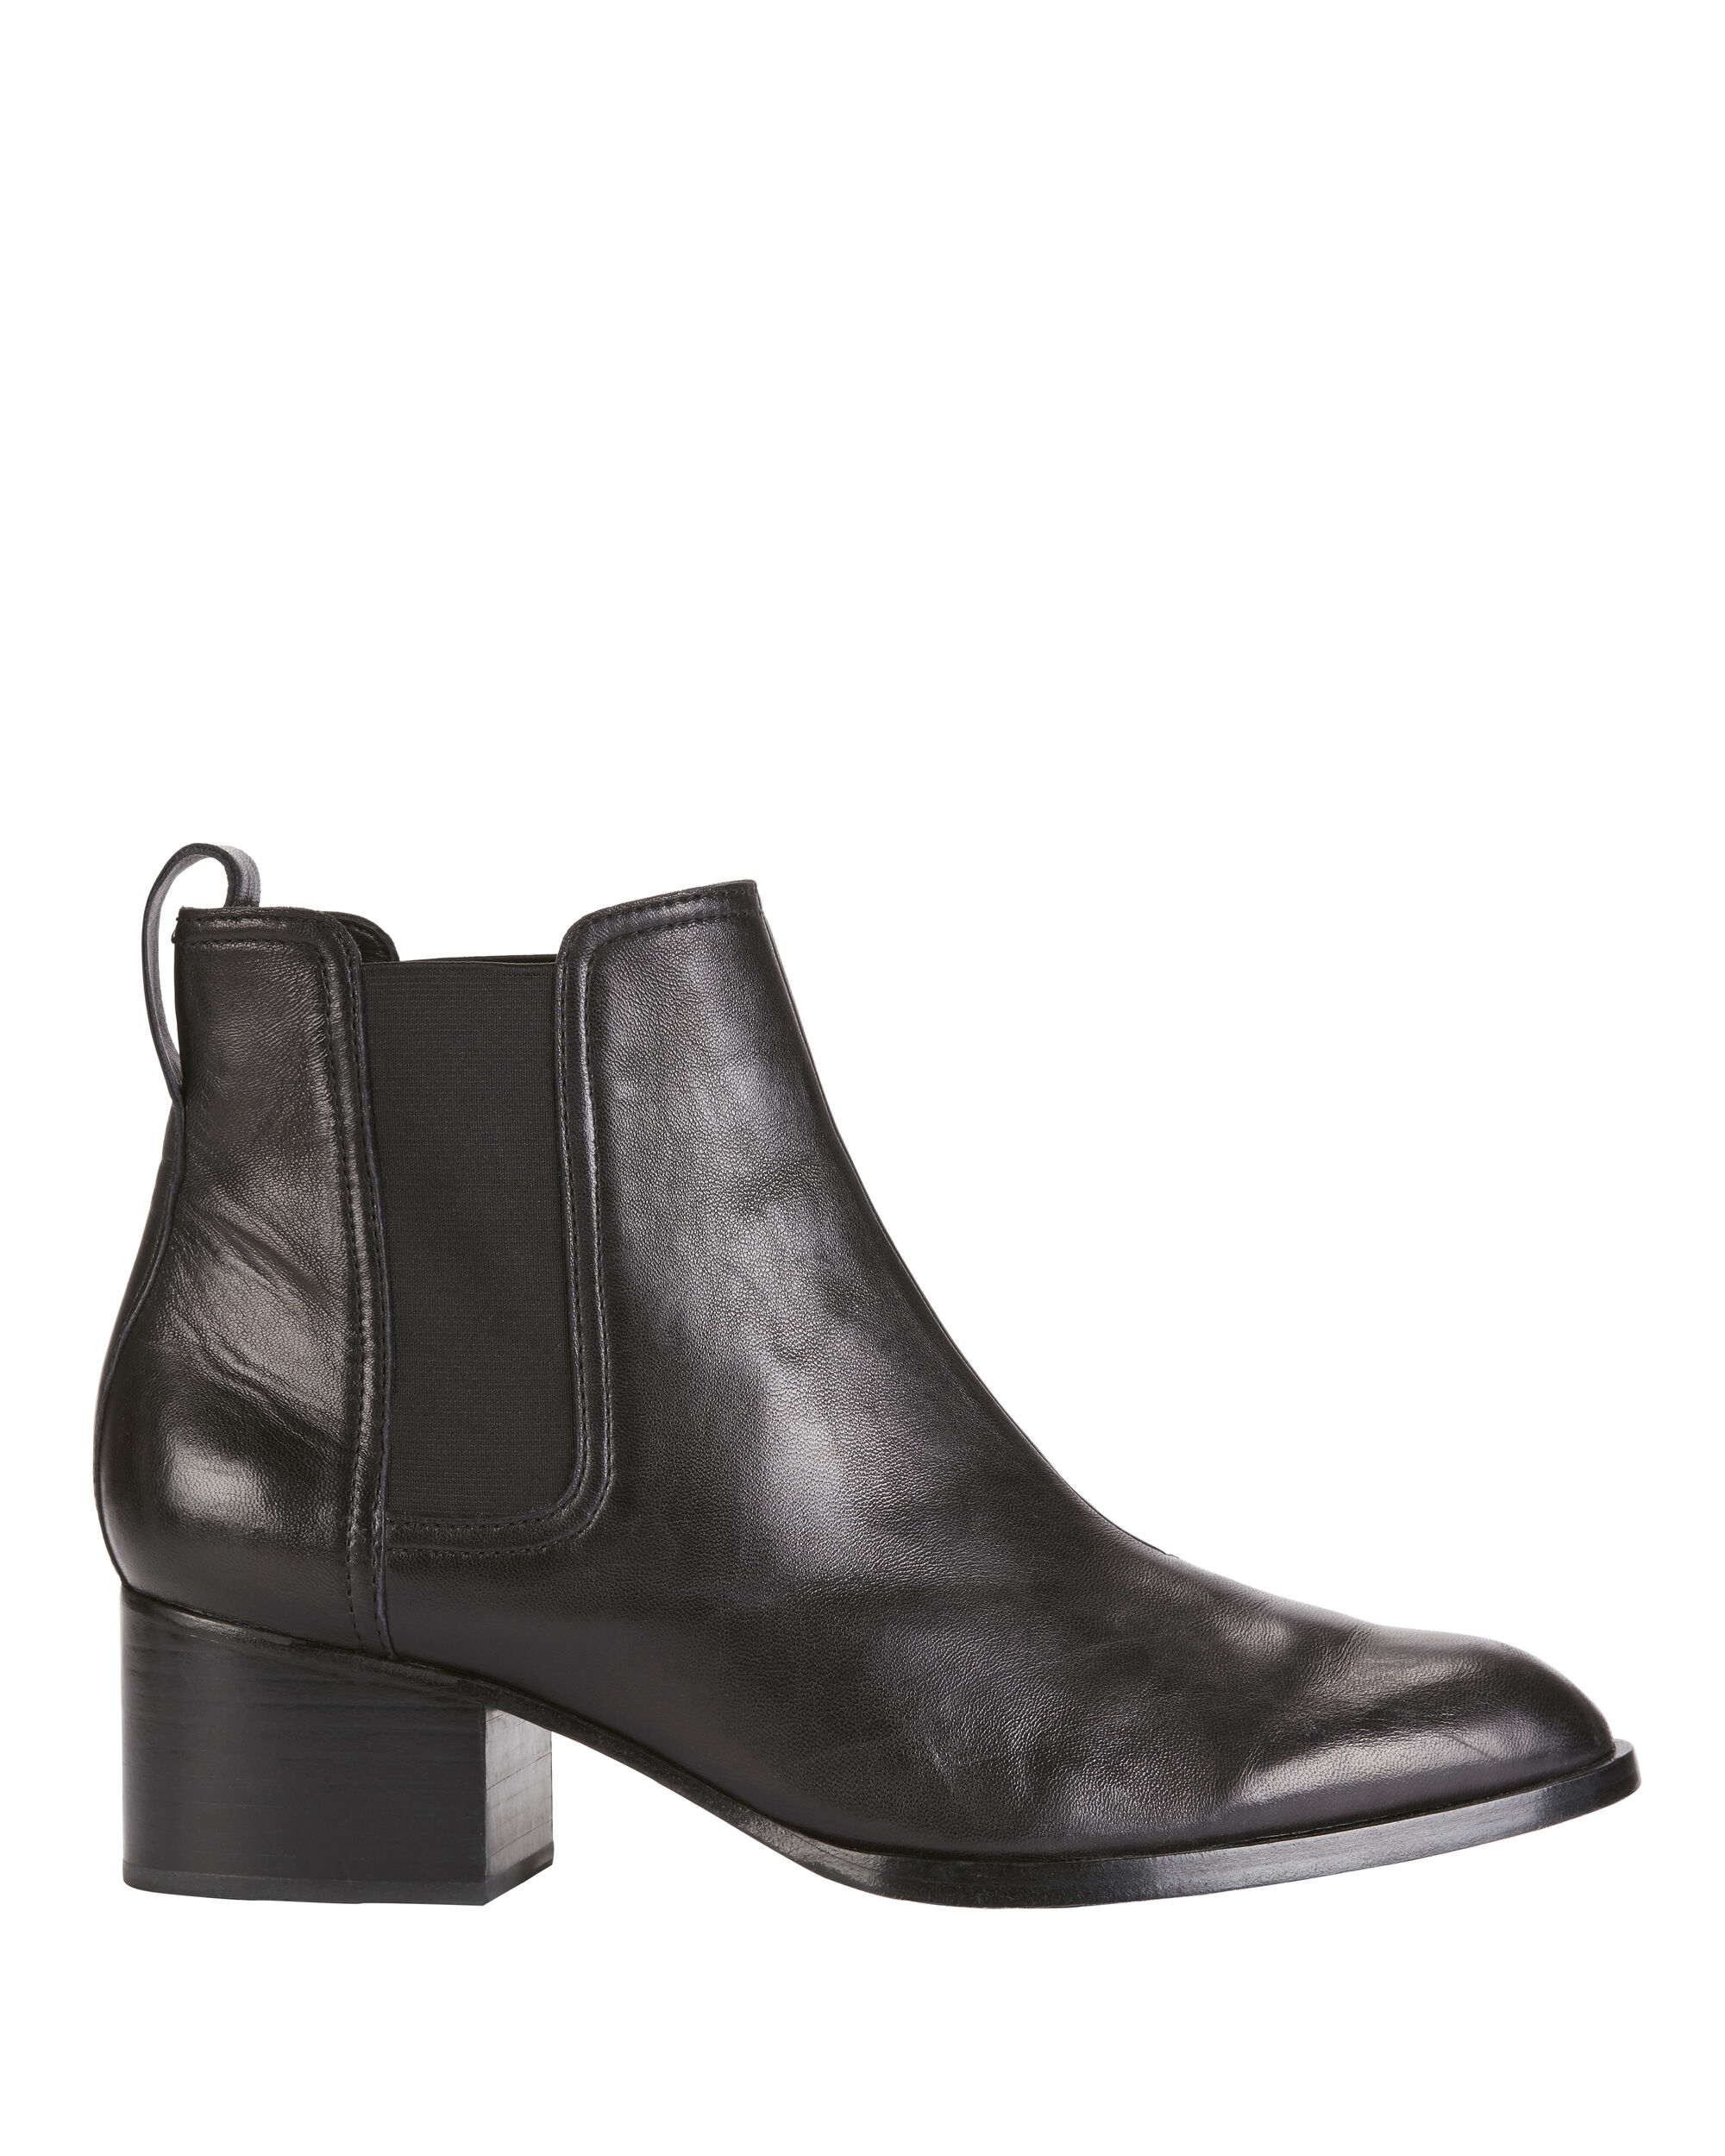 Walker Black Leather Booties, BLACK, hi-res